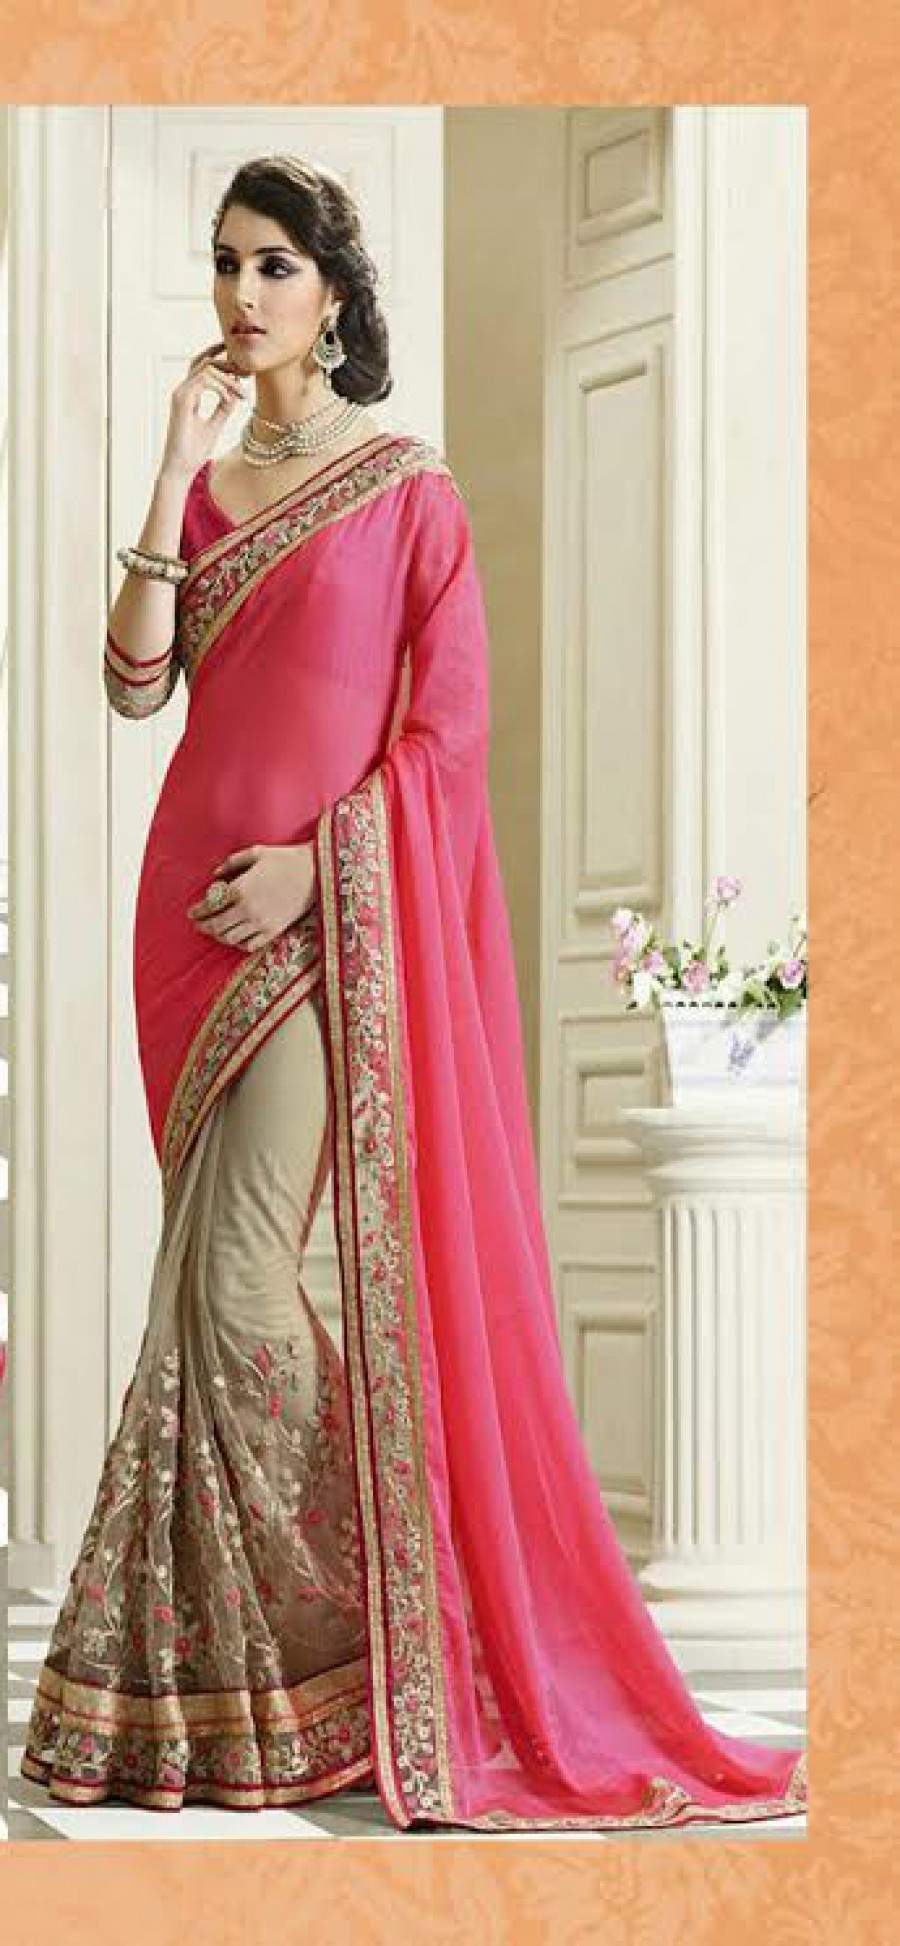 Buy Santana pink georgette and cream net worked half half saree with blouse Online